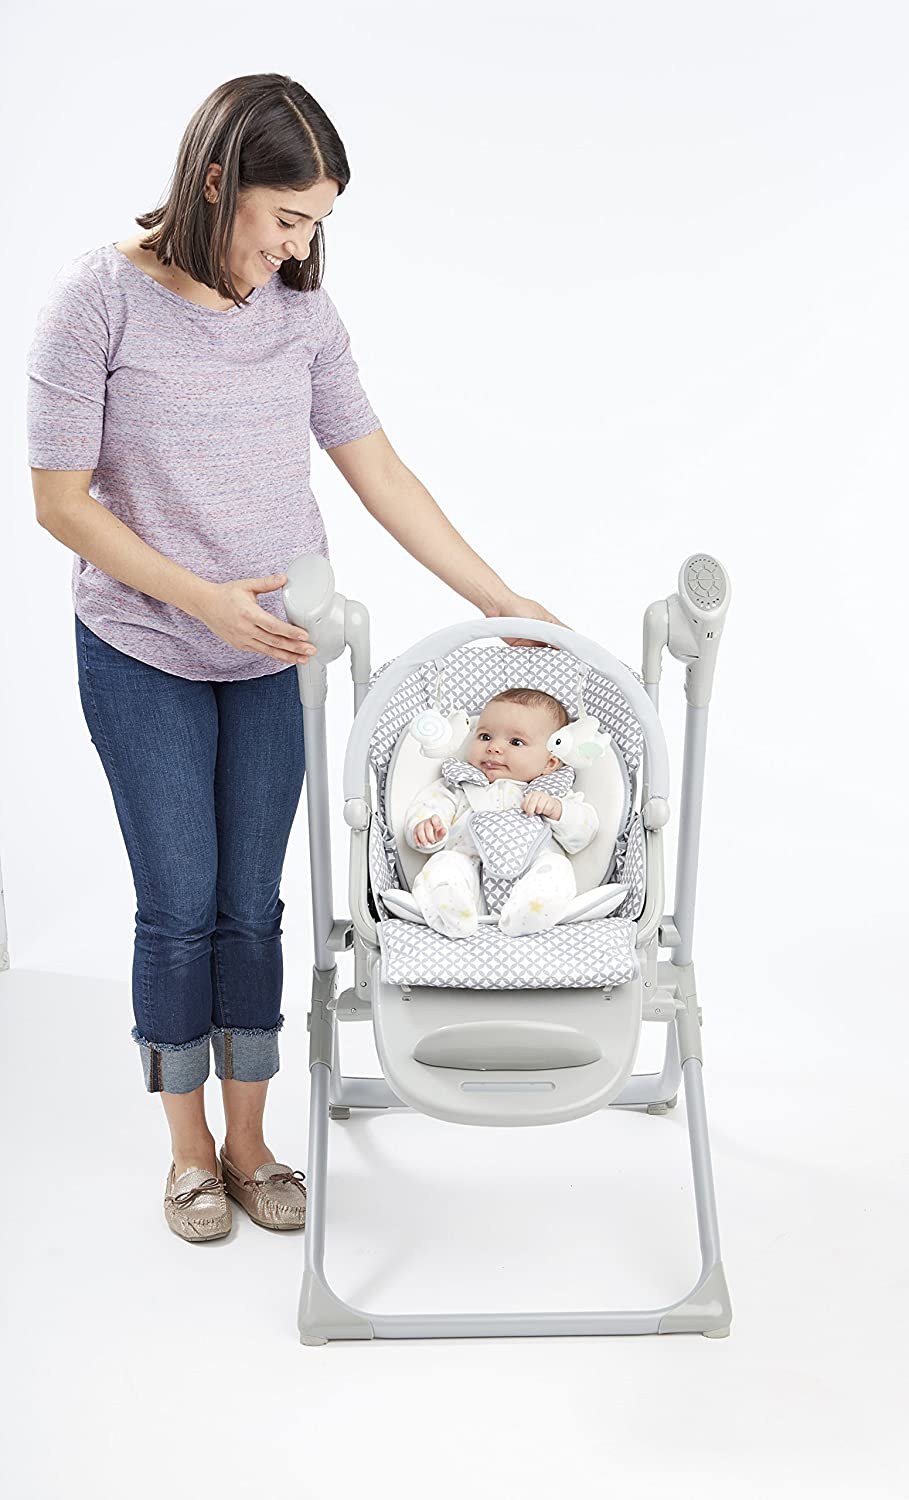 81lTwLXOHGL. SL1500 9 of the Best Baby Swing for Small Spaces (Apartments) 2021